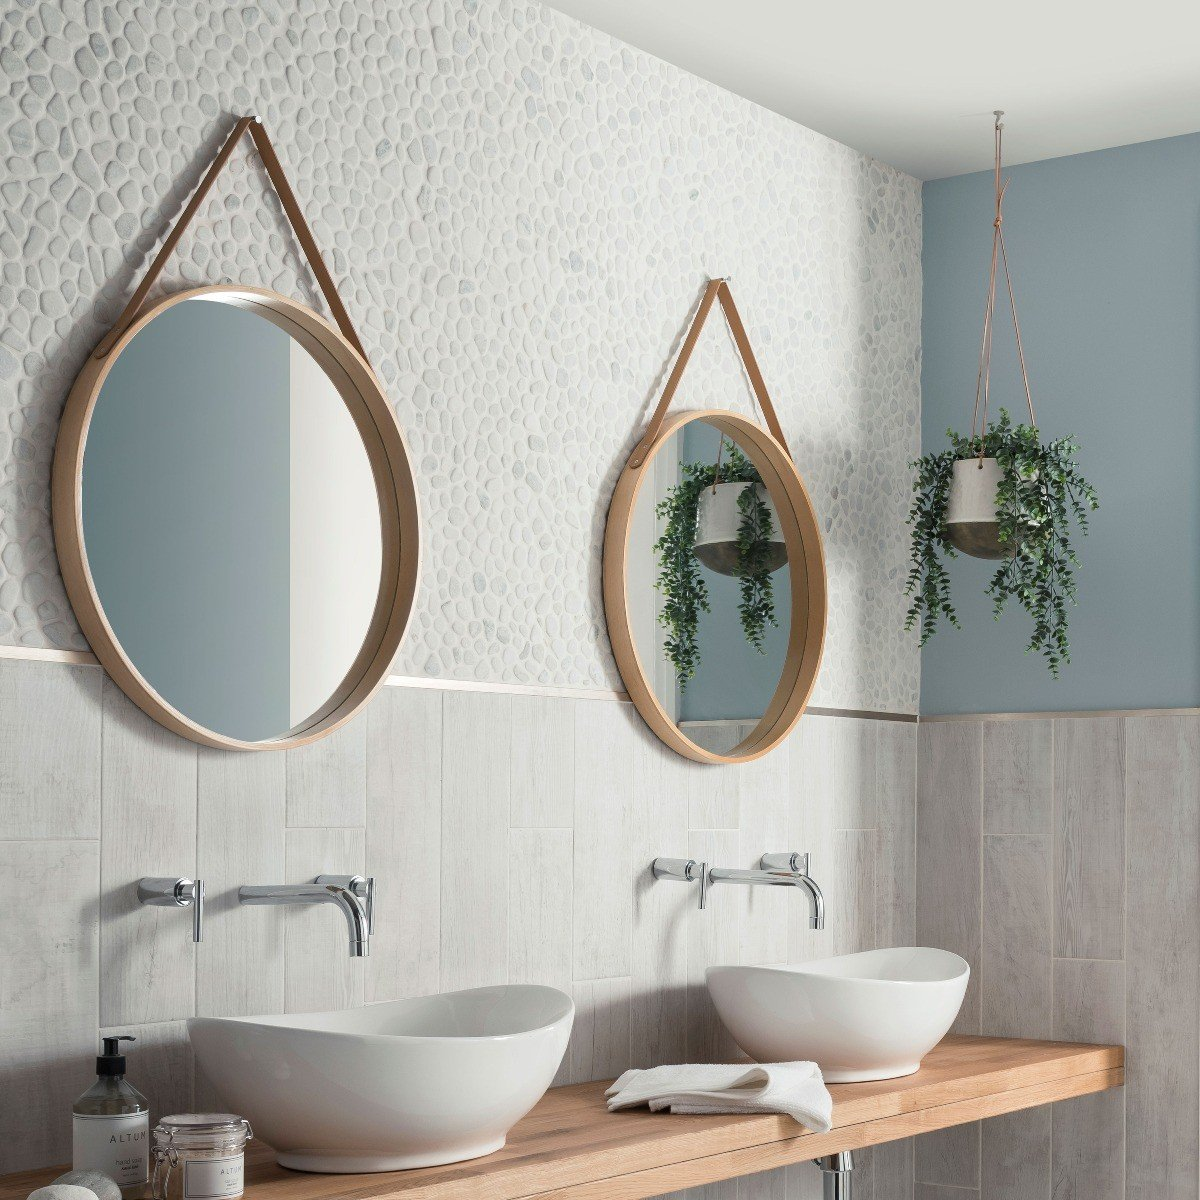 Pebbles Stone Tile Collection Topps Tiles, Bathroom With Pebble Tiles